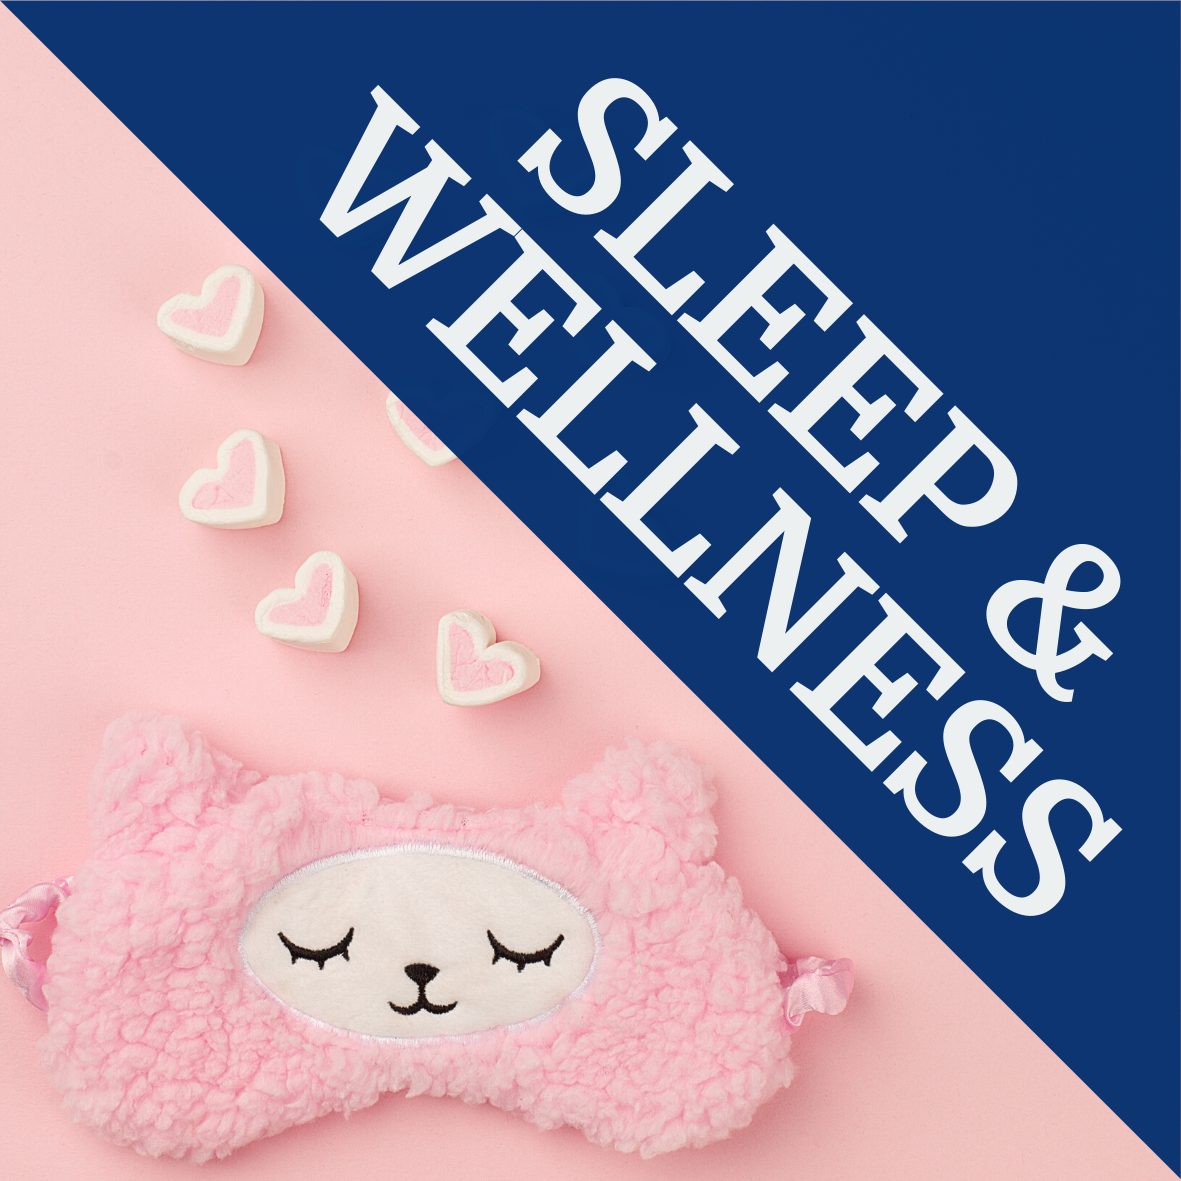 Sleep & Wellness